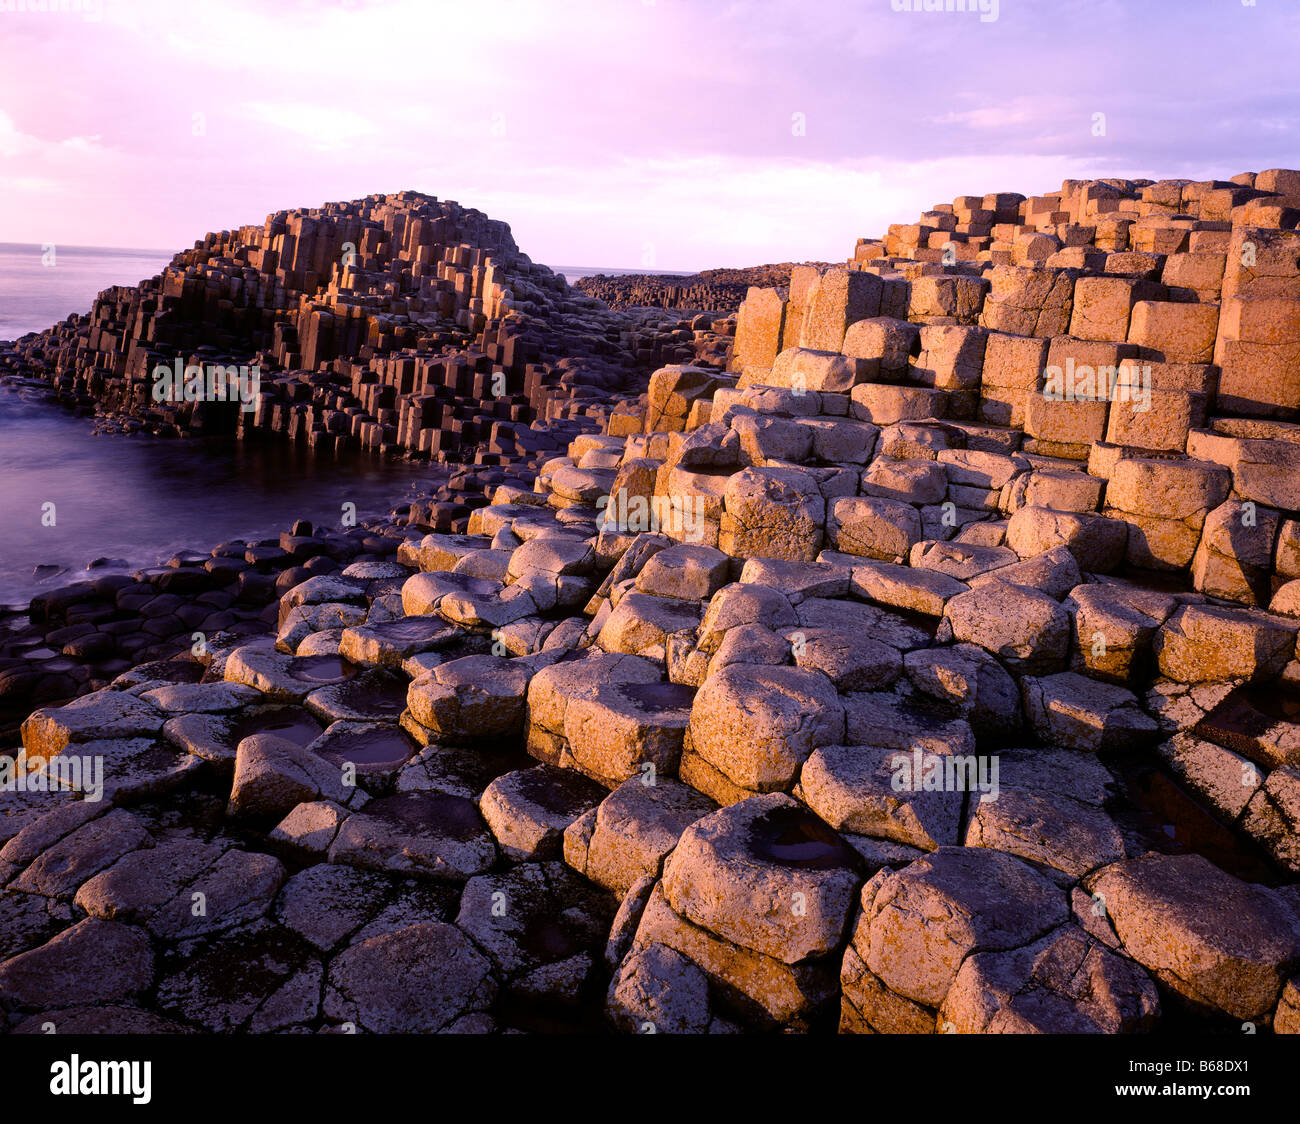 Giants Causeway, Northern Ireland, United Kingdom, Giants Causeway National Park September County Antrim basalt - Stock Image